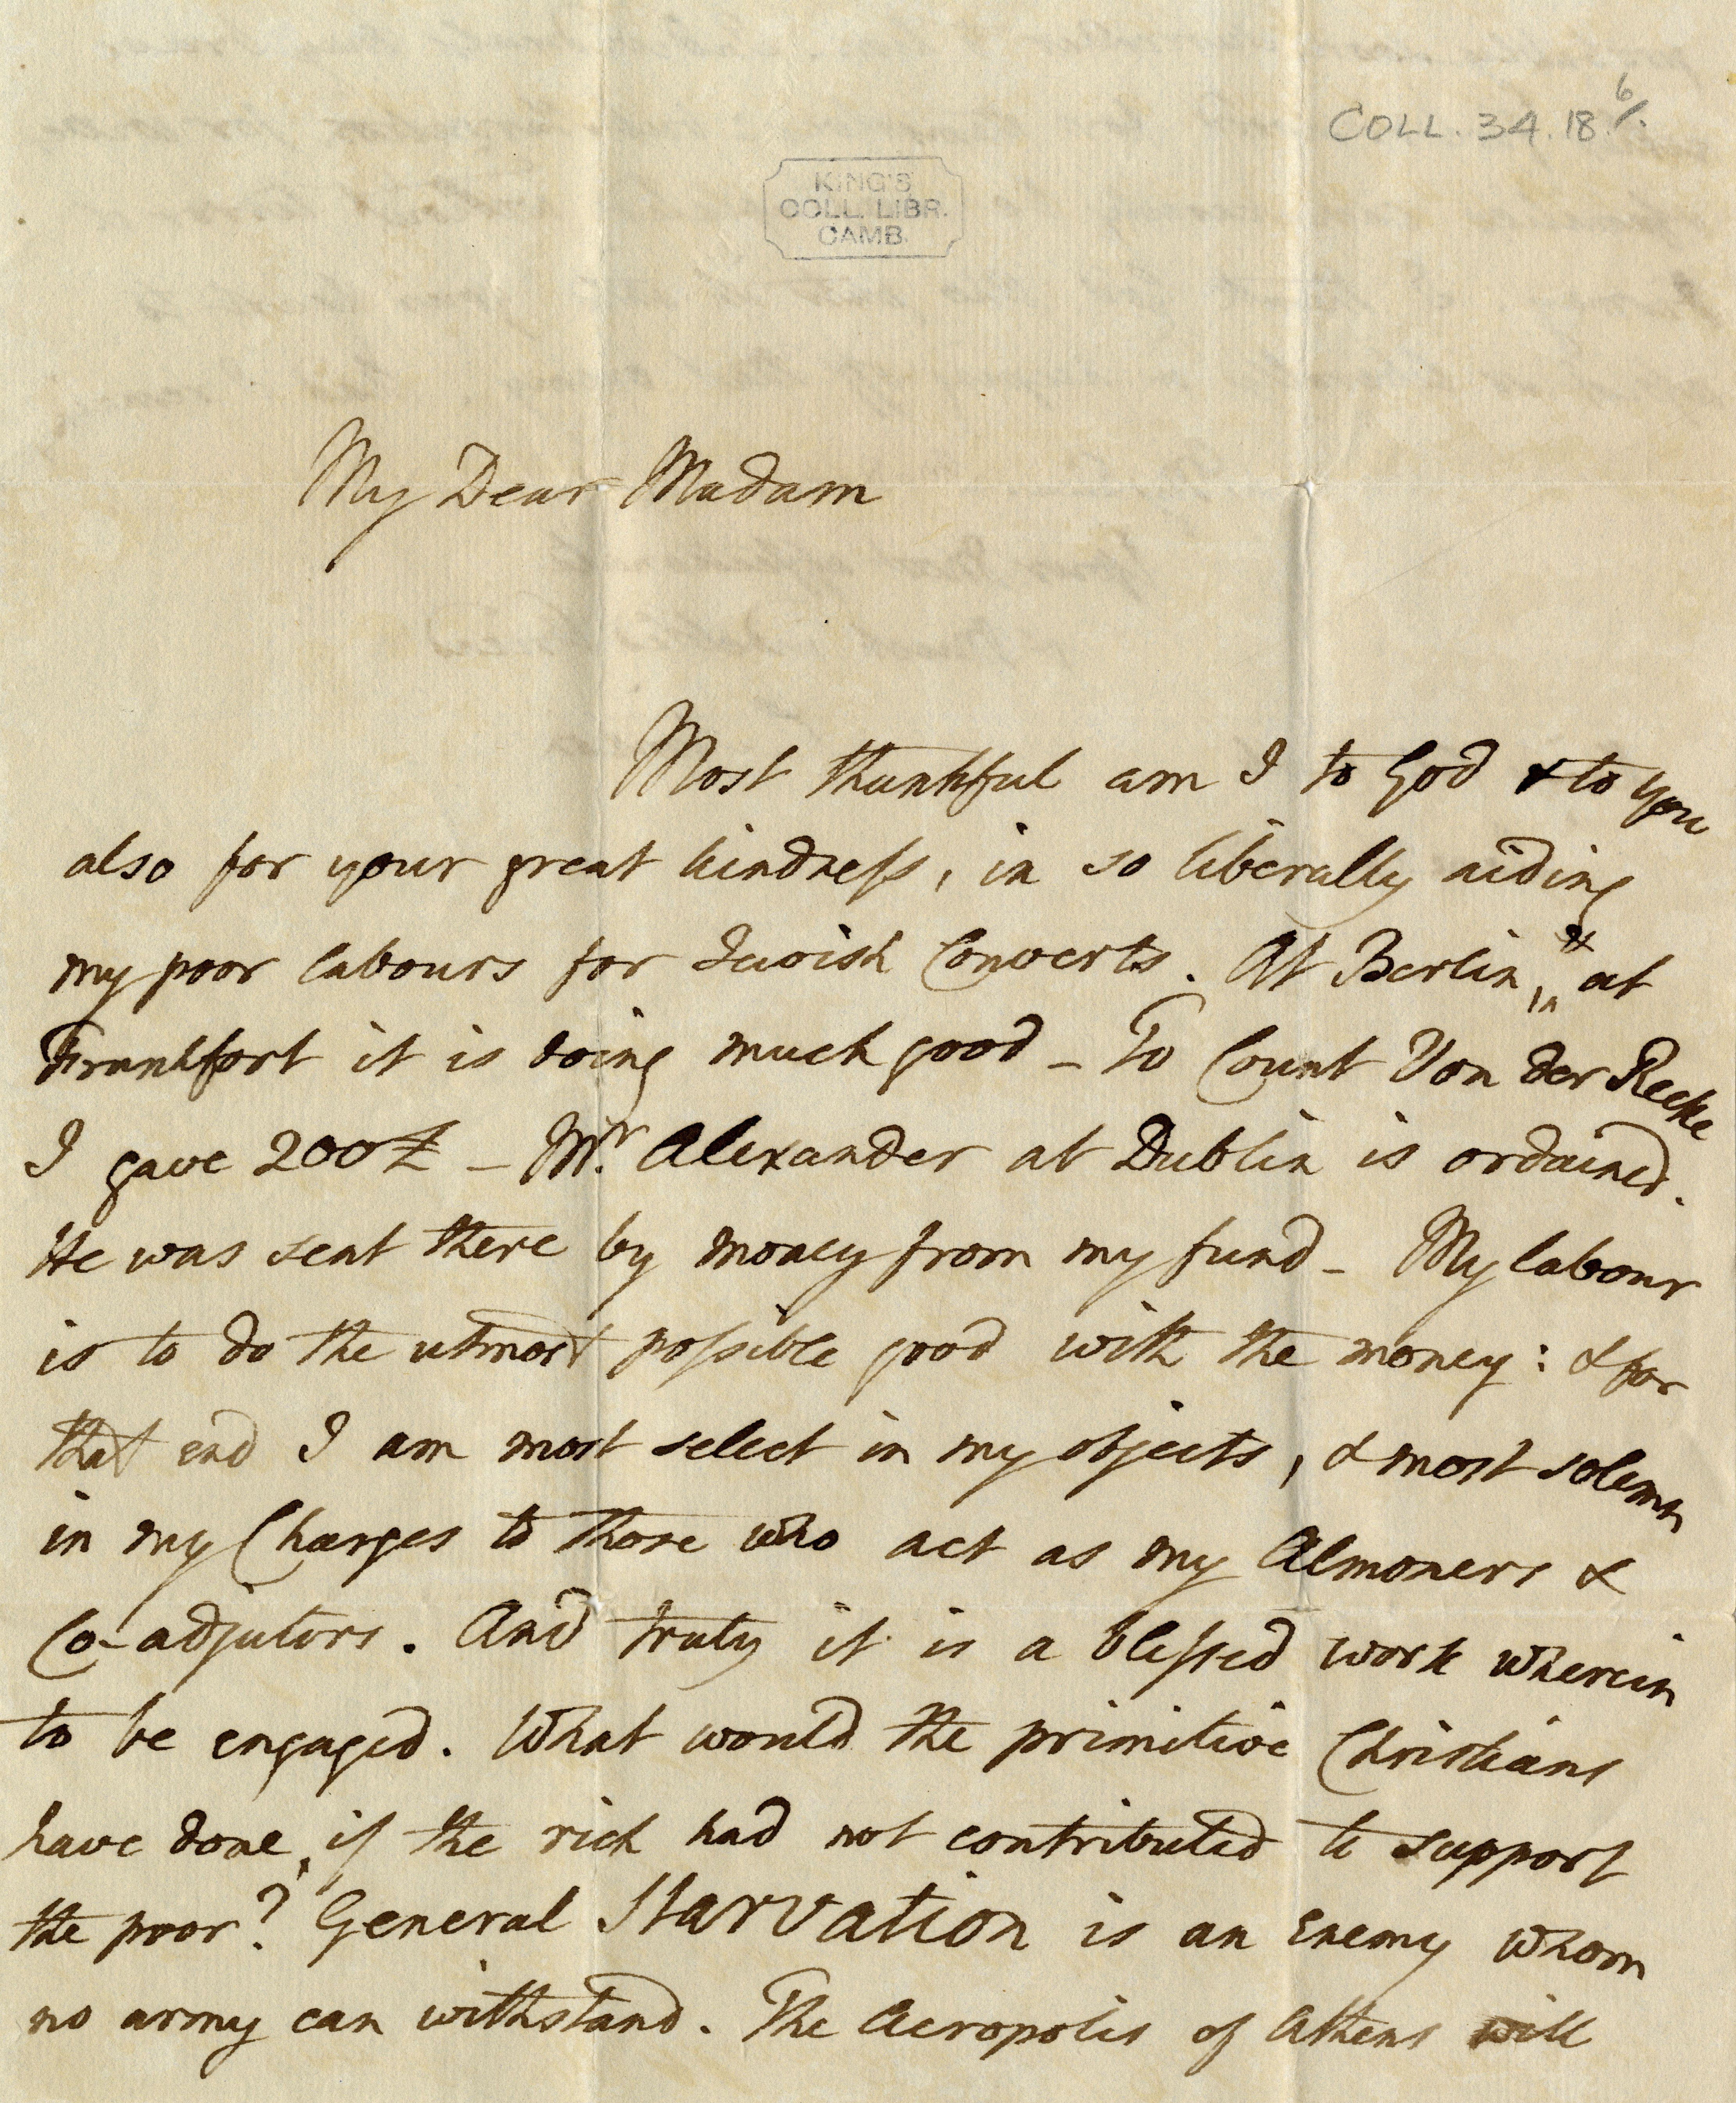 First page of a letter from Simeon to one of his supporters of the churches for converted Jews. (CS/1/Bowdler-1827-01-26)